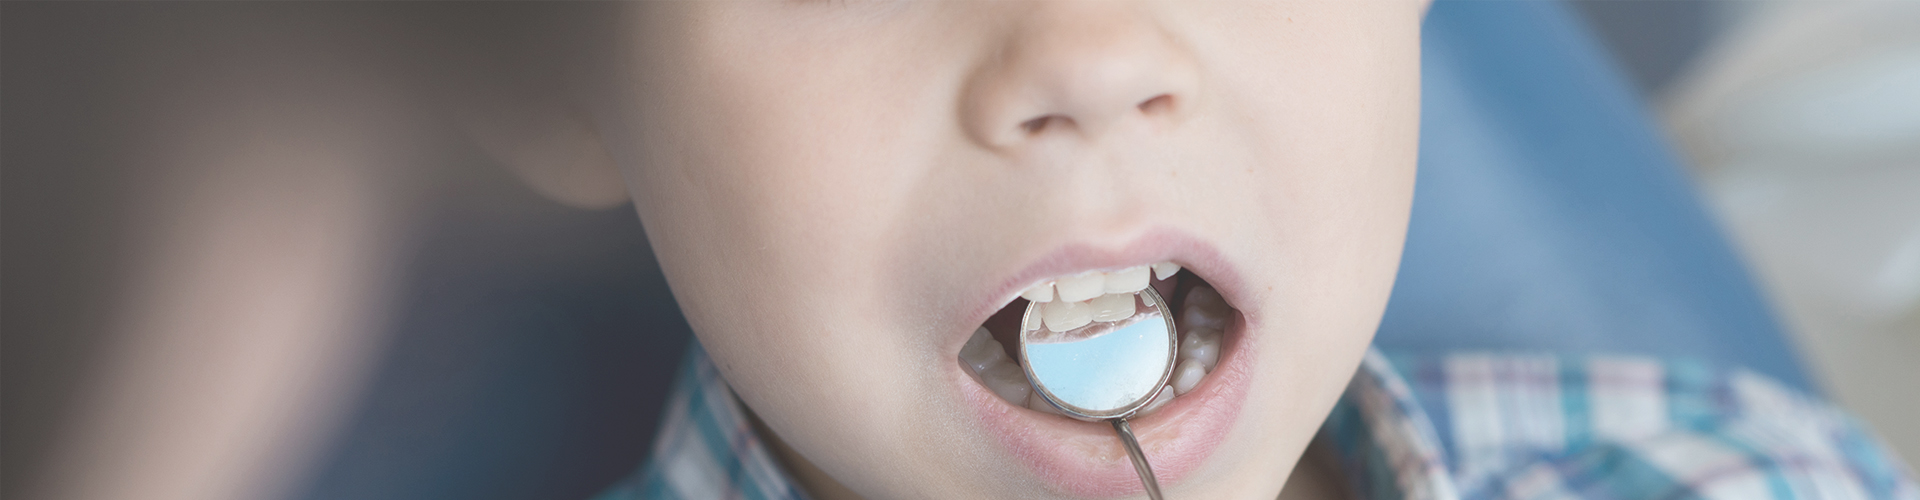 Preparing your child for their first visit to the dentist